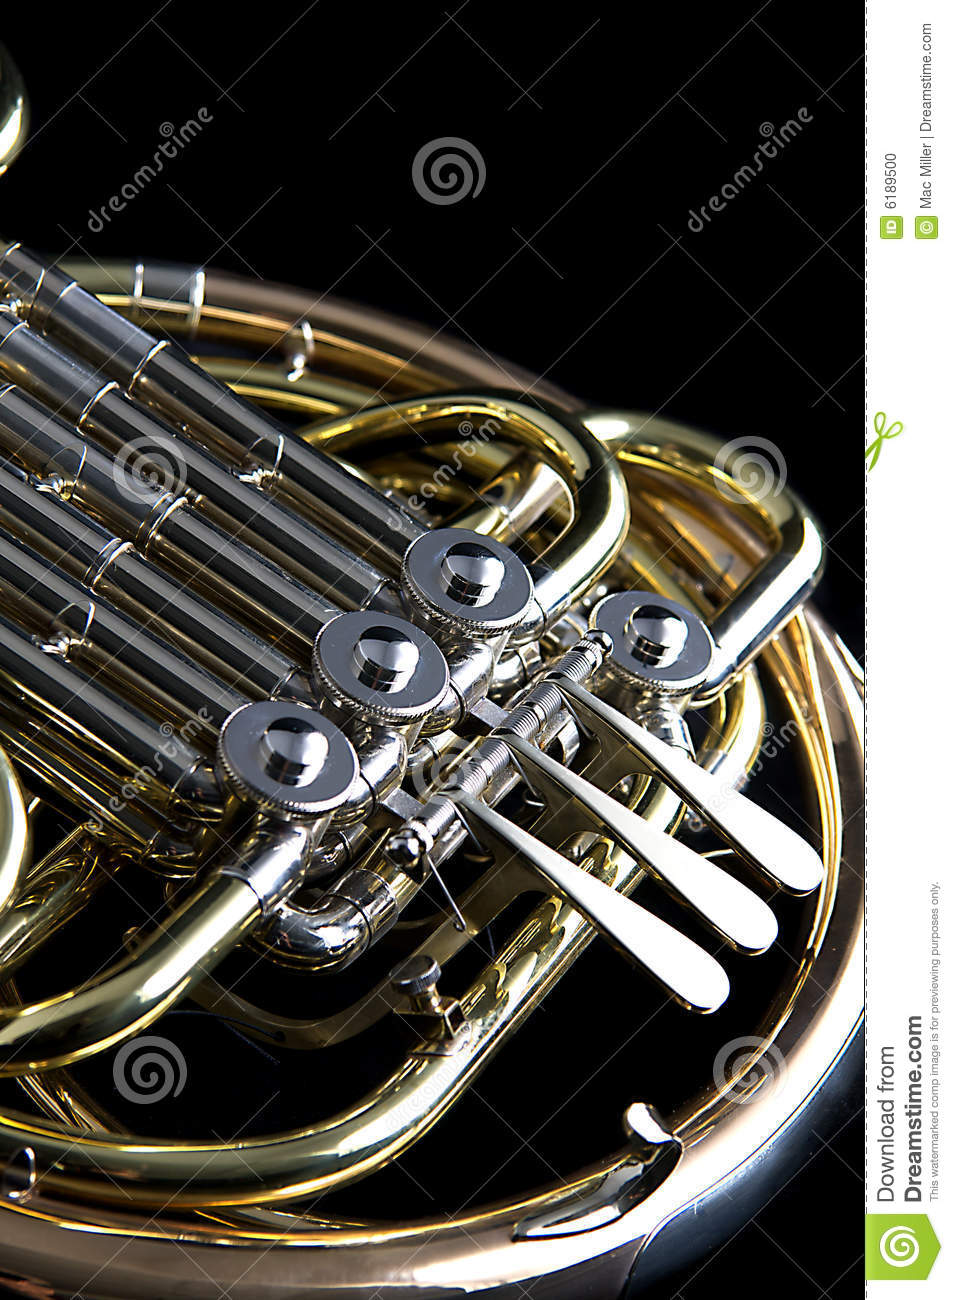 French Horn On Black Background Stock Photo - Image: 6189500